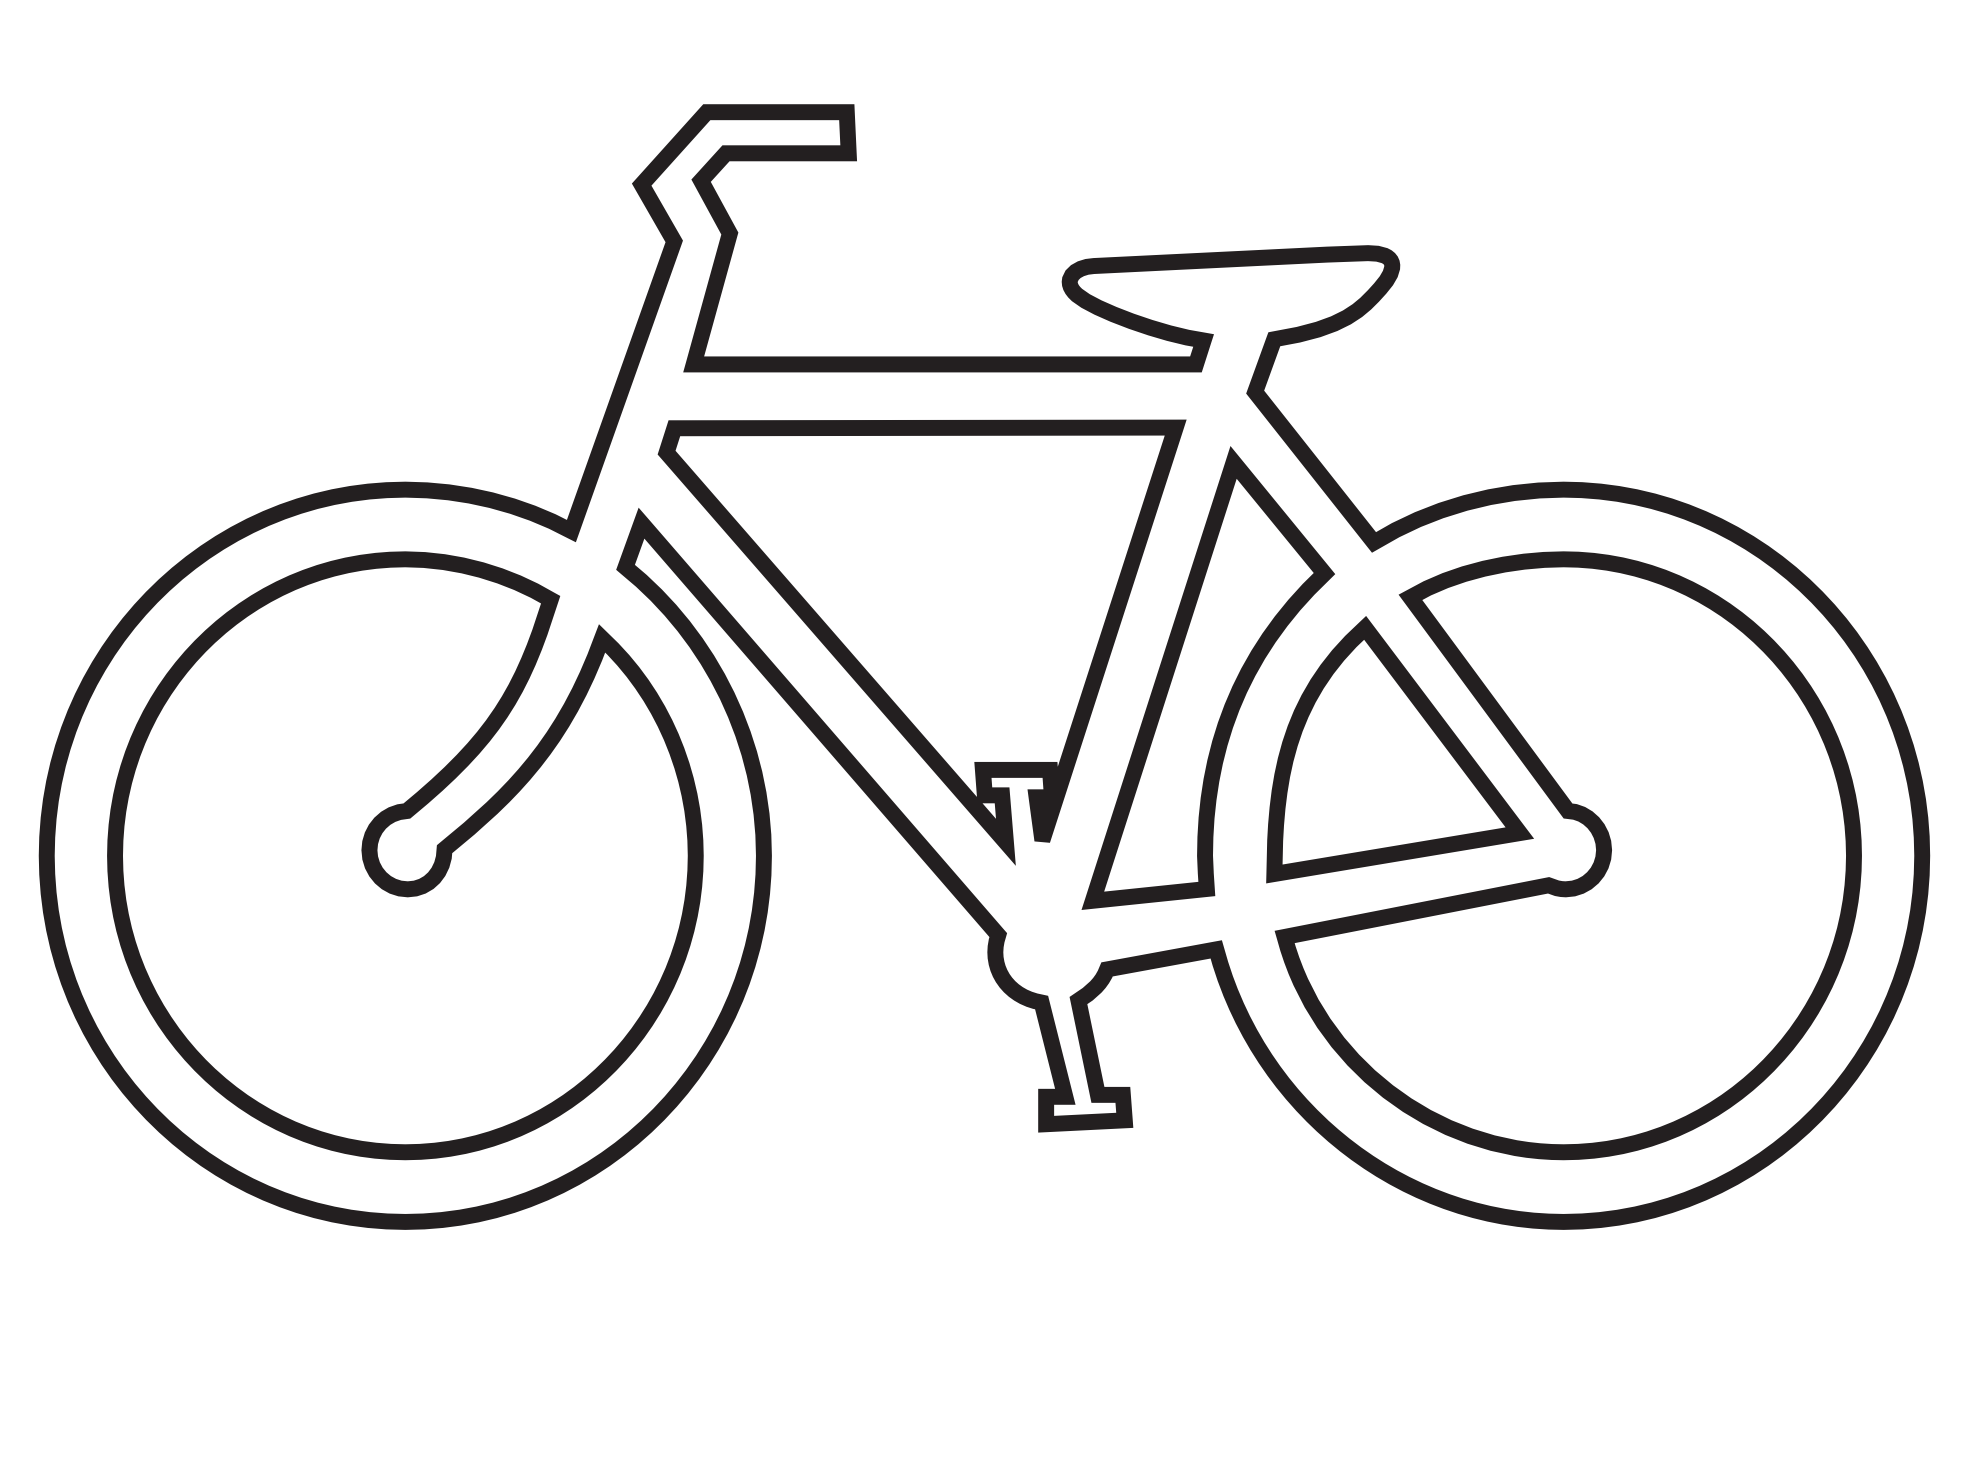 Bw bike clipart vector black and white Bicycle clipart outline, Bicycle outline Transparent FREE for ... vector black and white